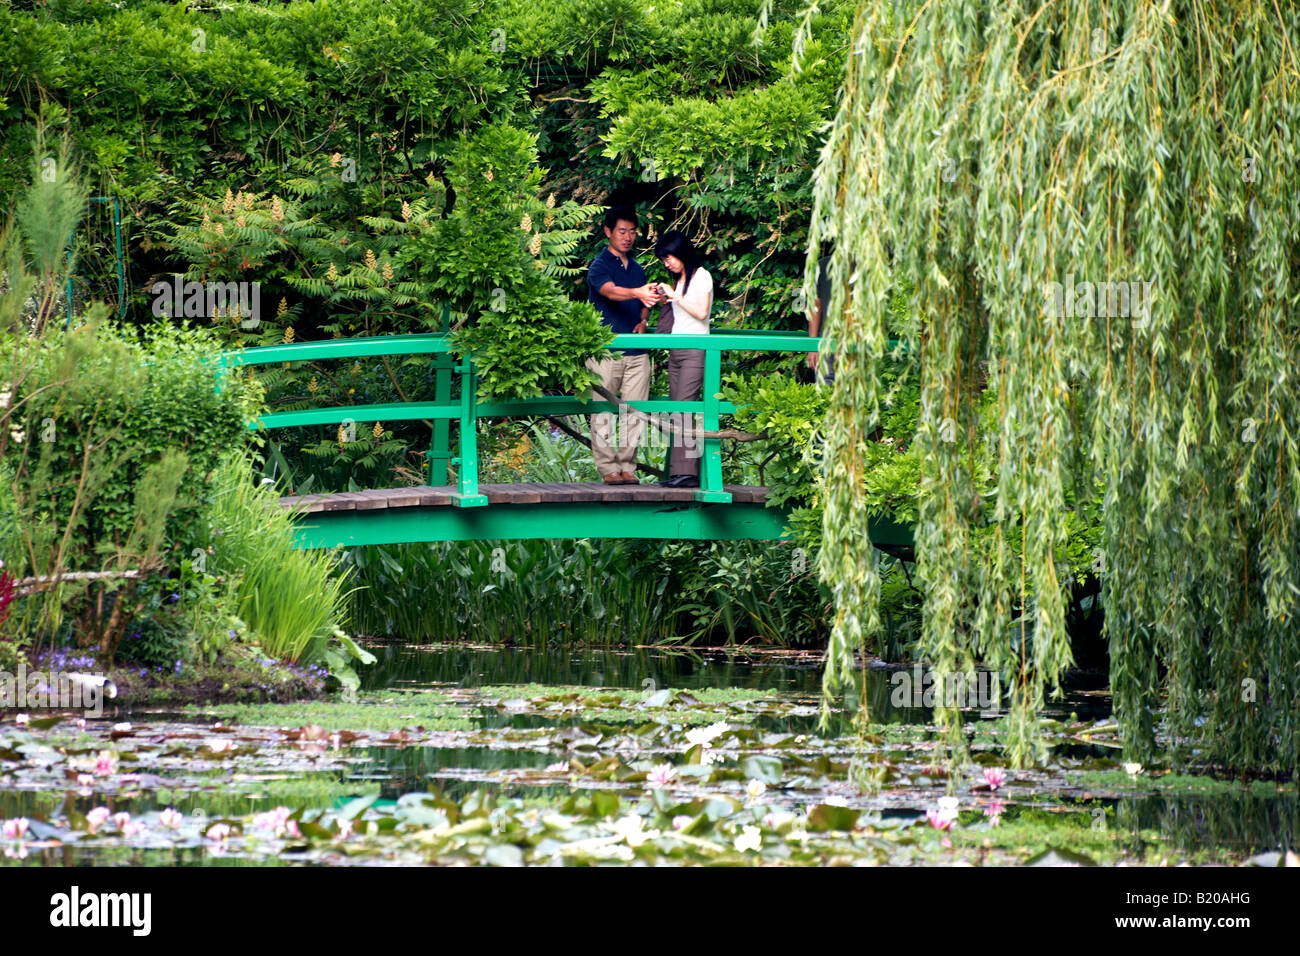 Couple On Japanese Bridge Monetu0027s Garden Giverny Near Paris France   Stock  Image